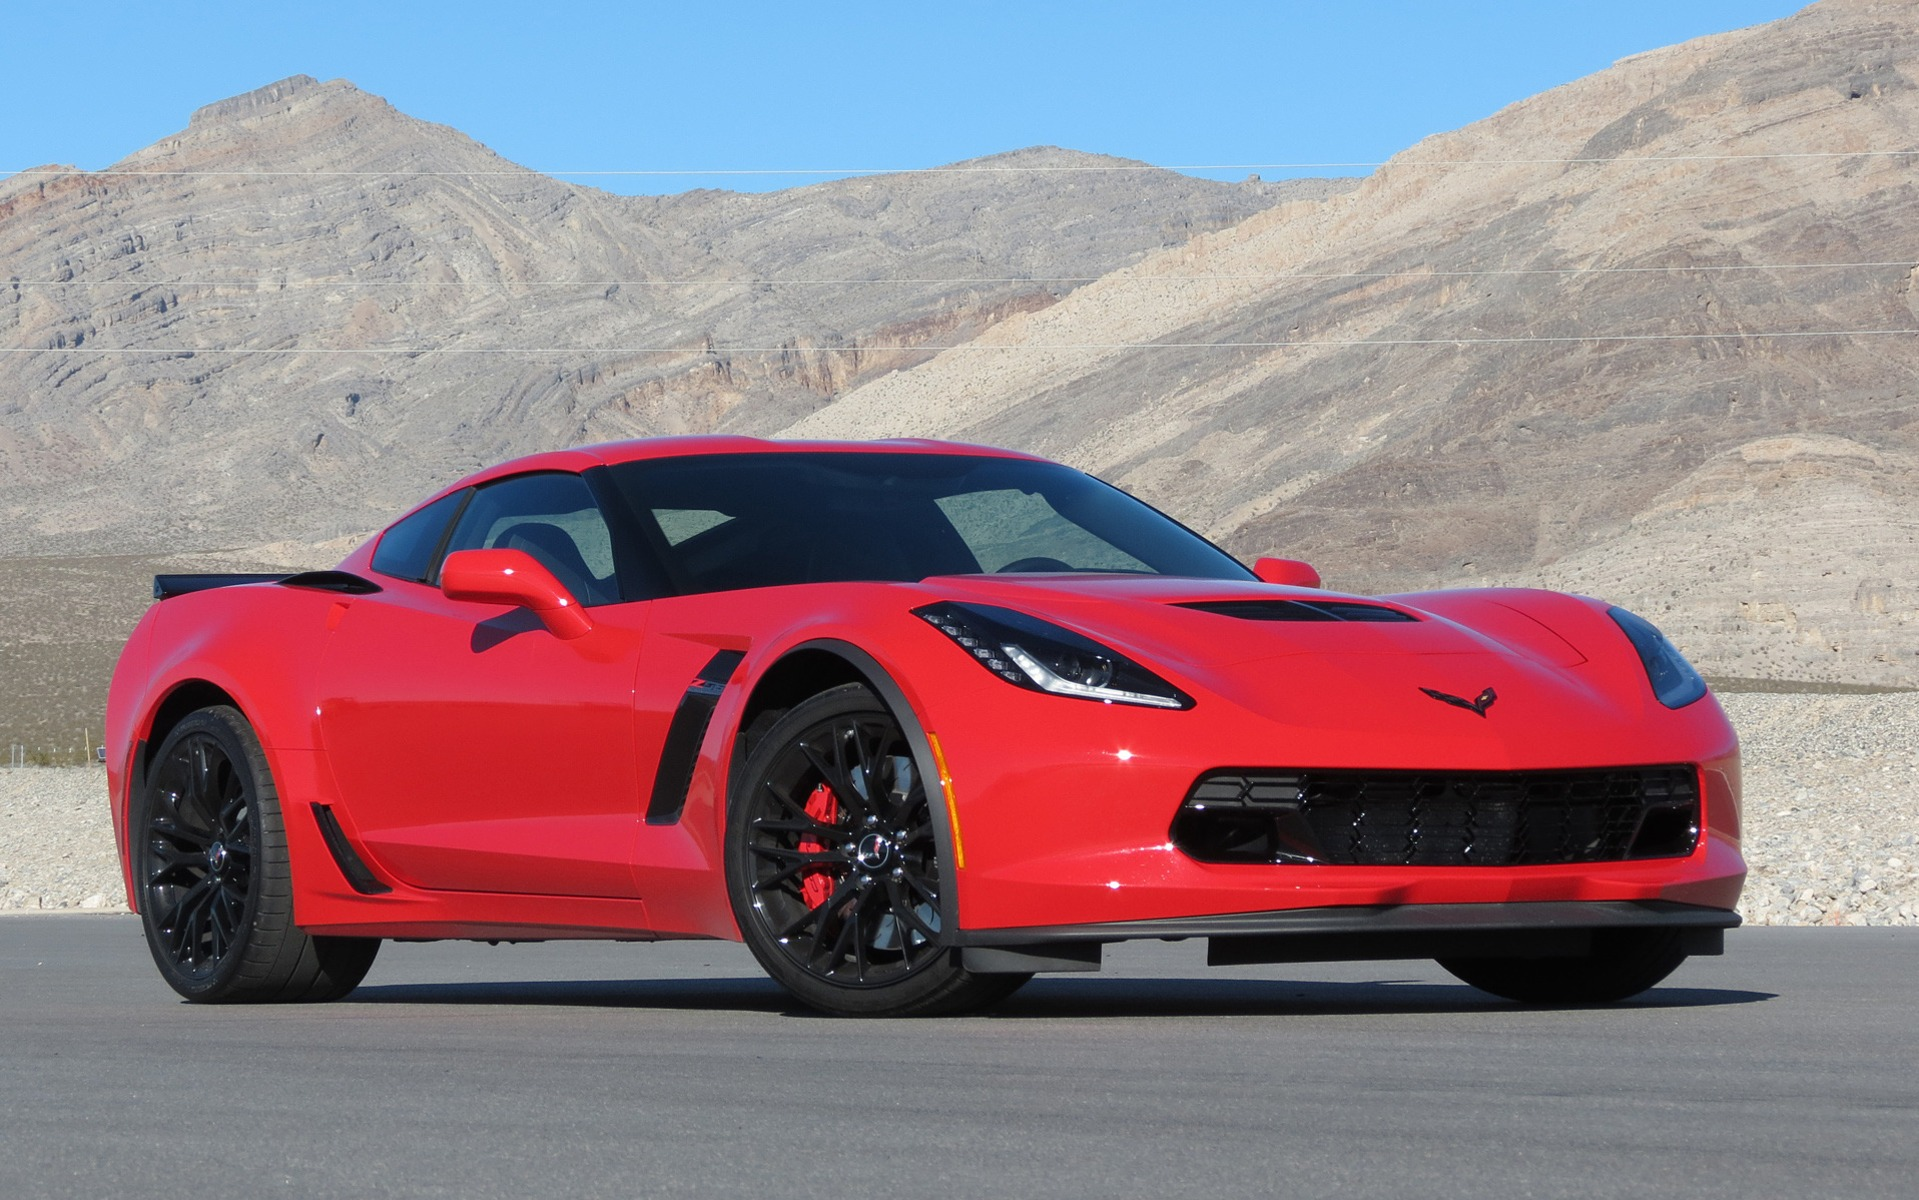 2015 Chevrolet Corvette Z06: Almost Outruns Its Shadow - The Car Guide